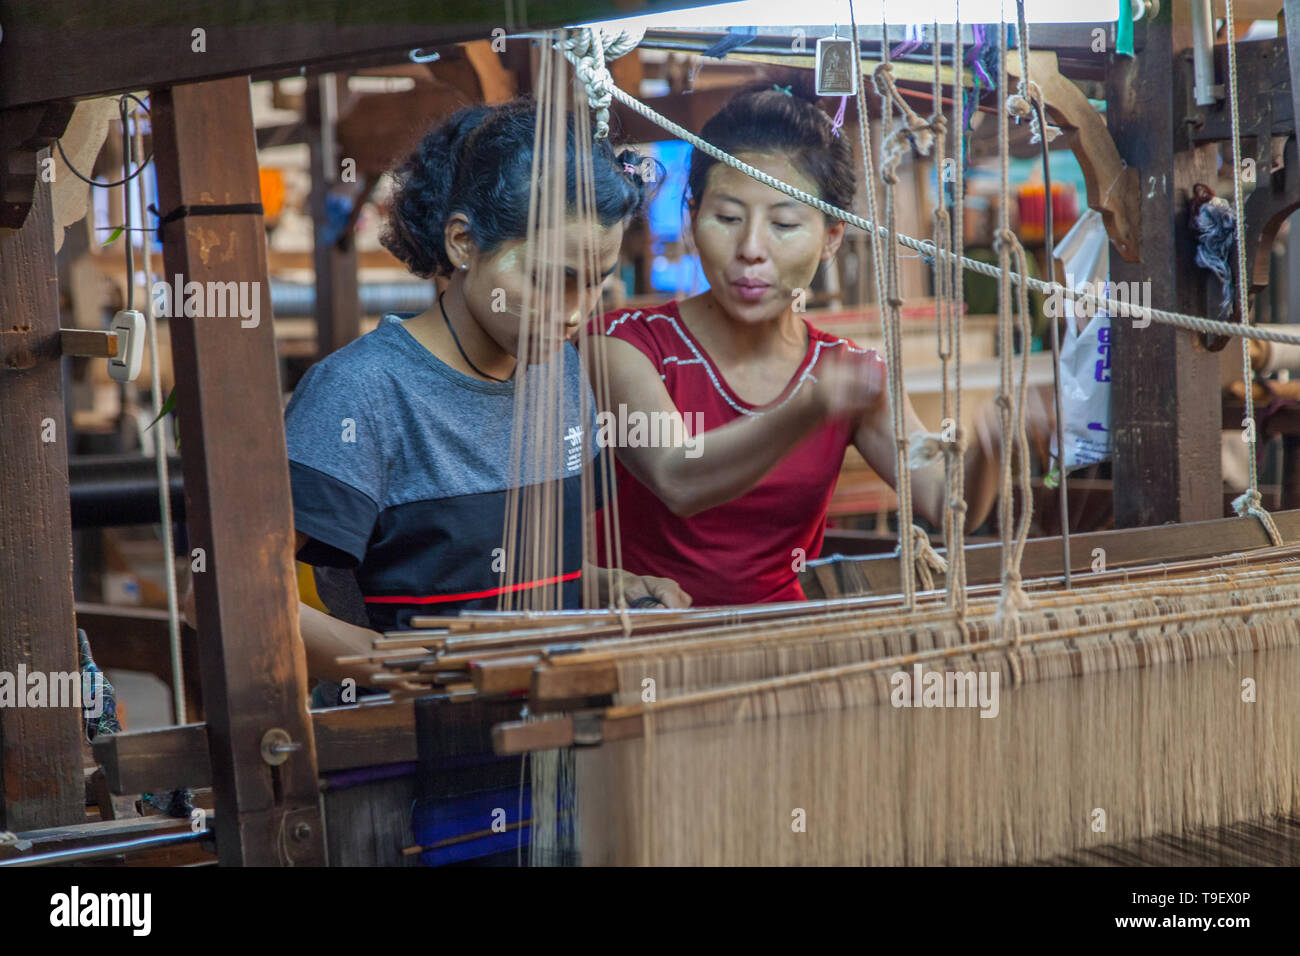 Young burmese women working at the loom - Stock Image